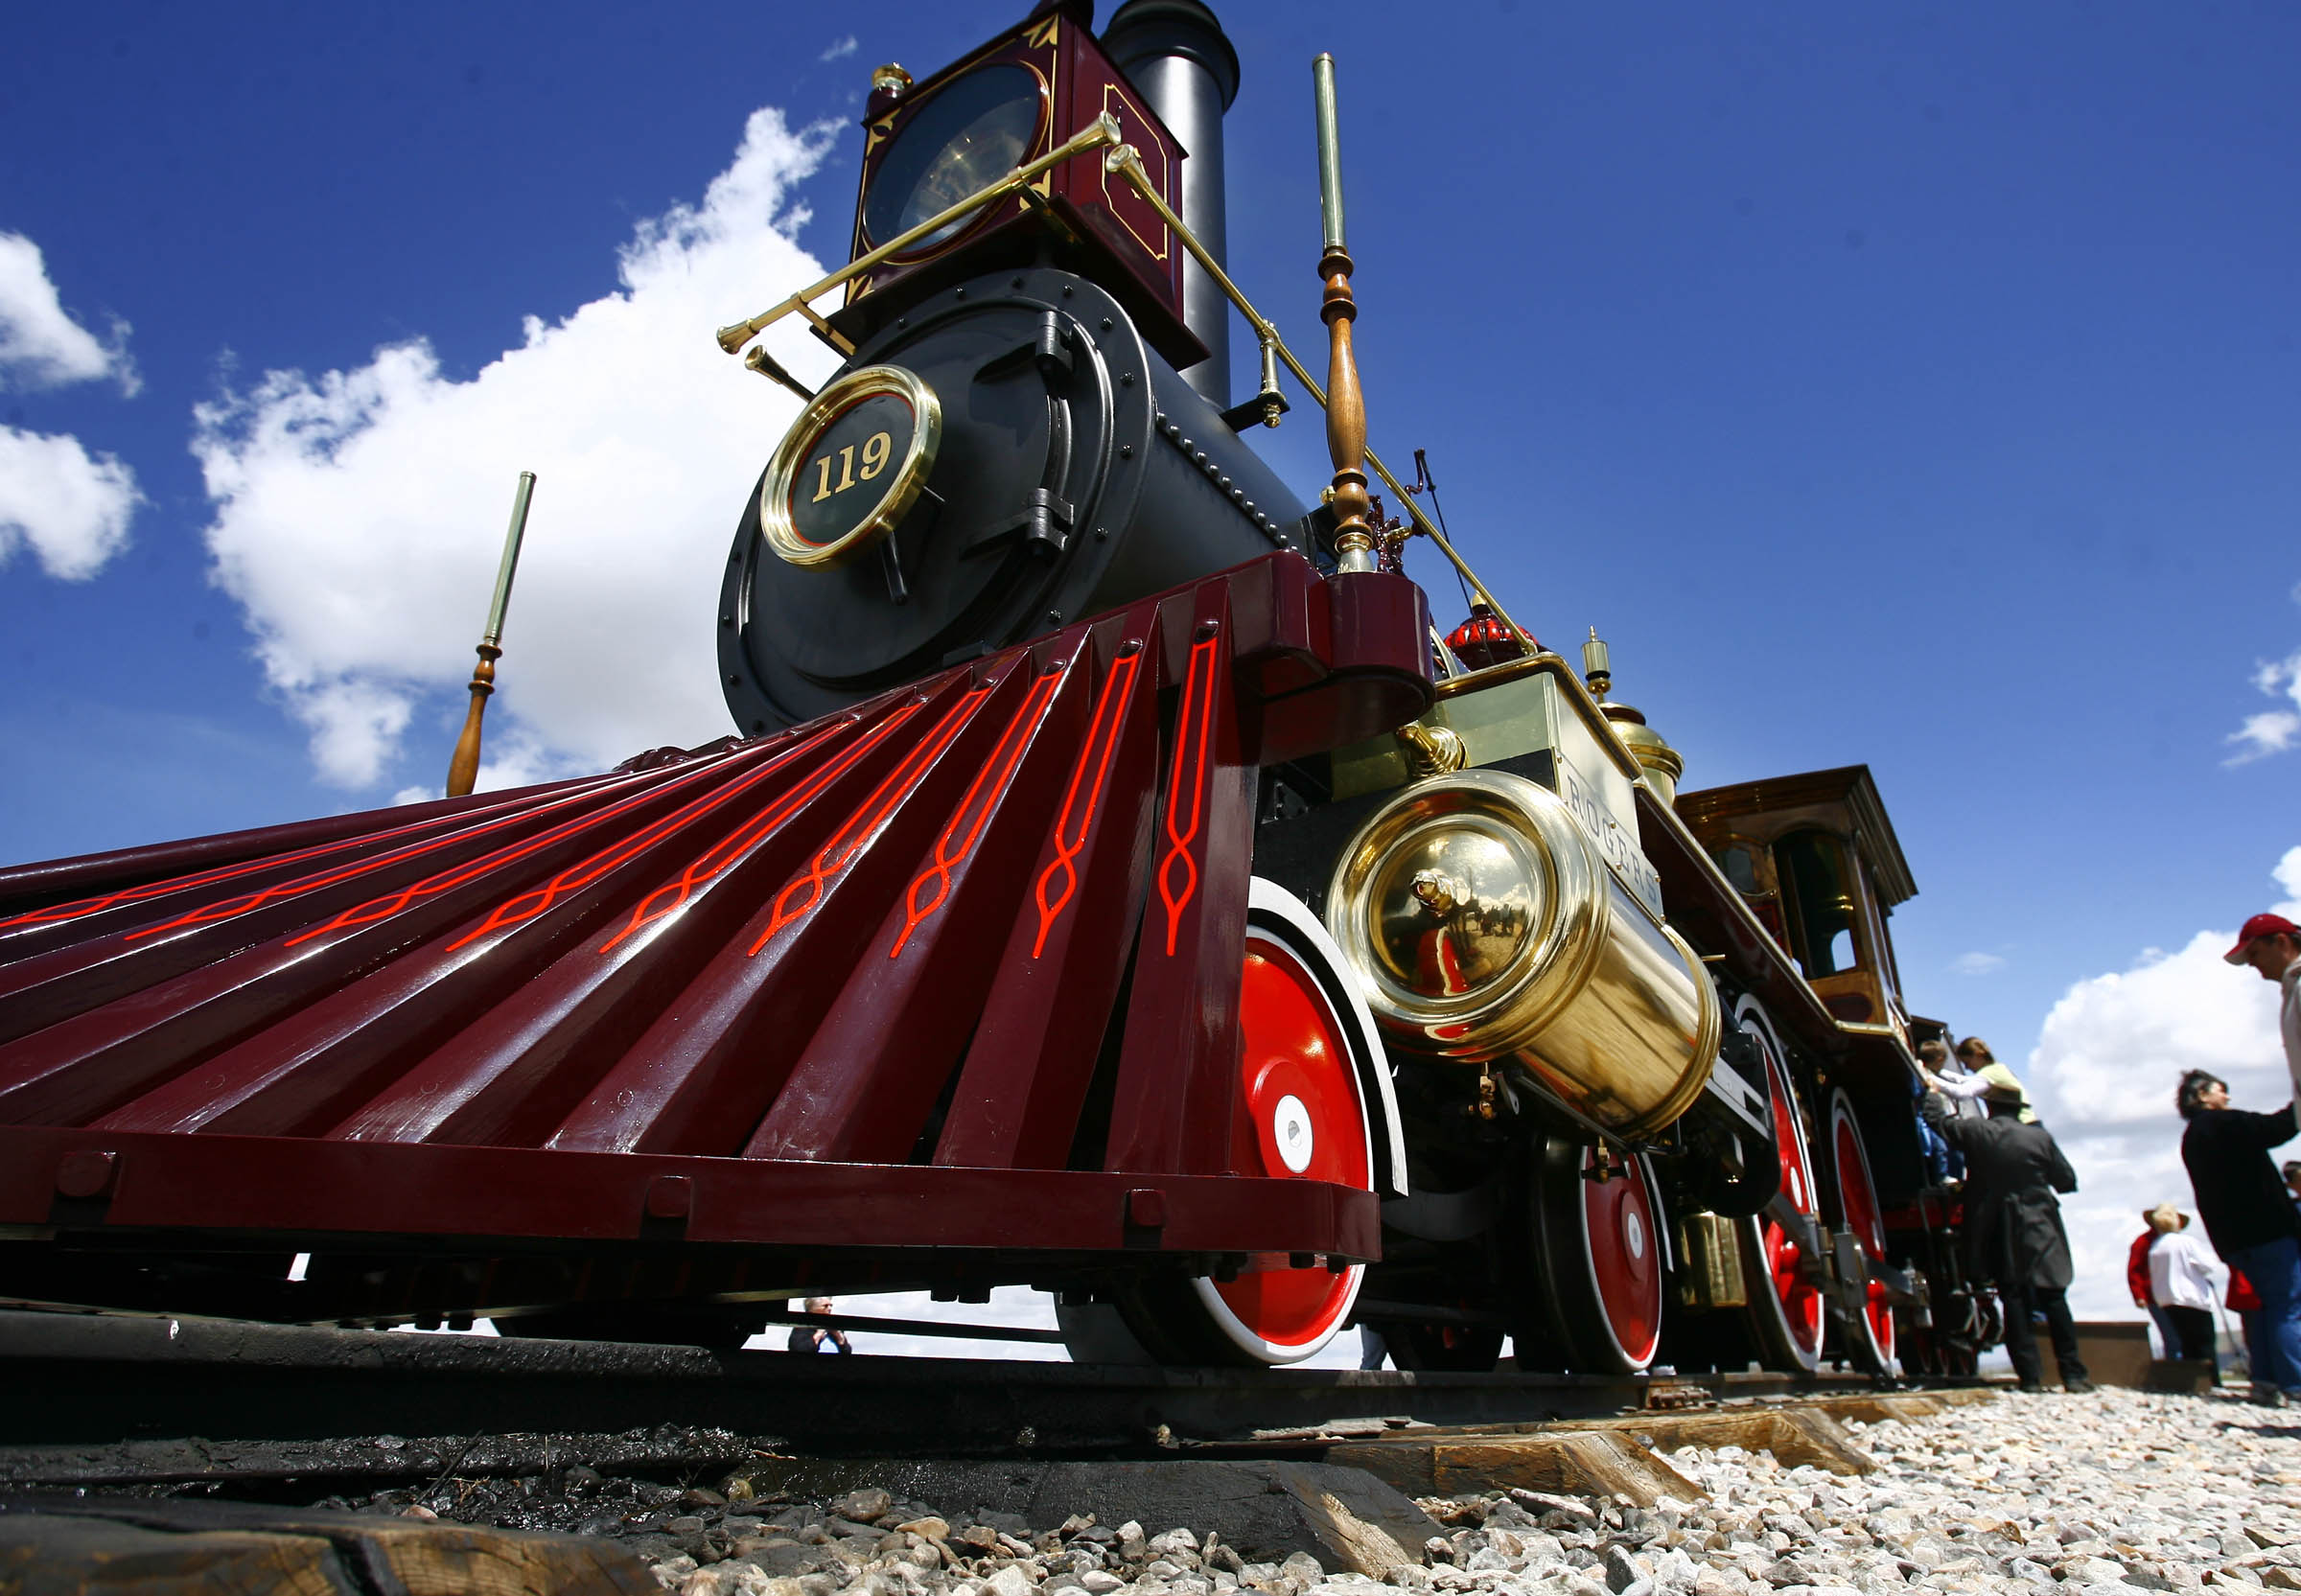 The 119 engine is photographed Monday, May 10, 2010, as the Golden Spike National Historic Site celebrates the 141st anniversary of the day the country was united by rail.